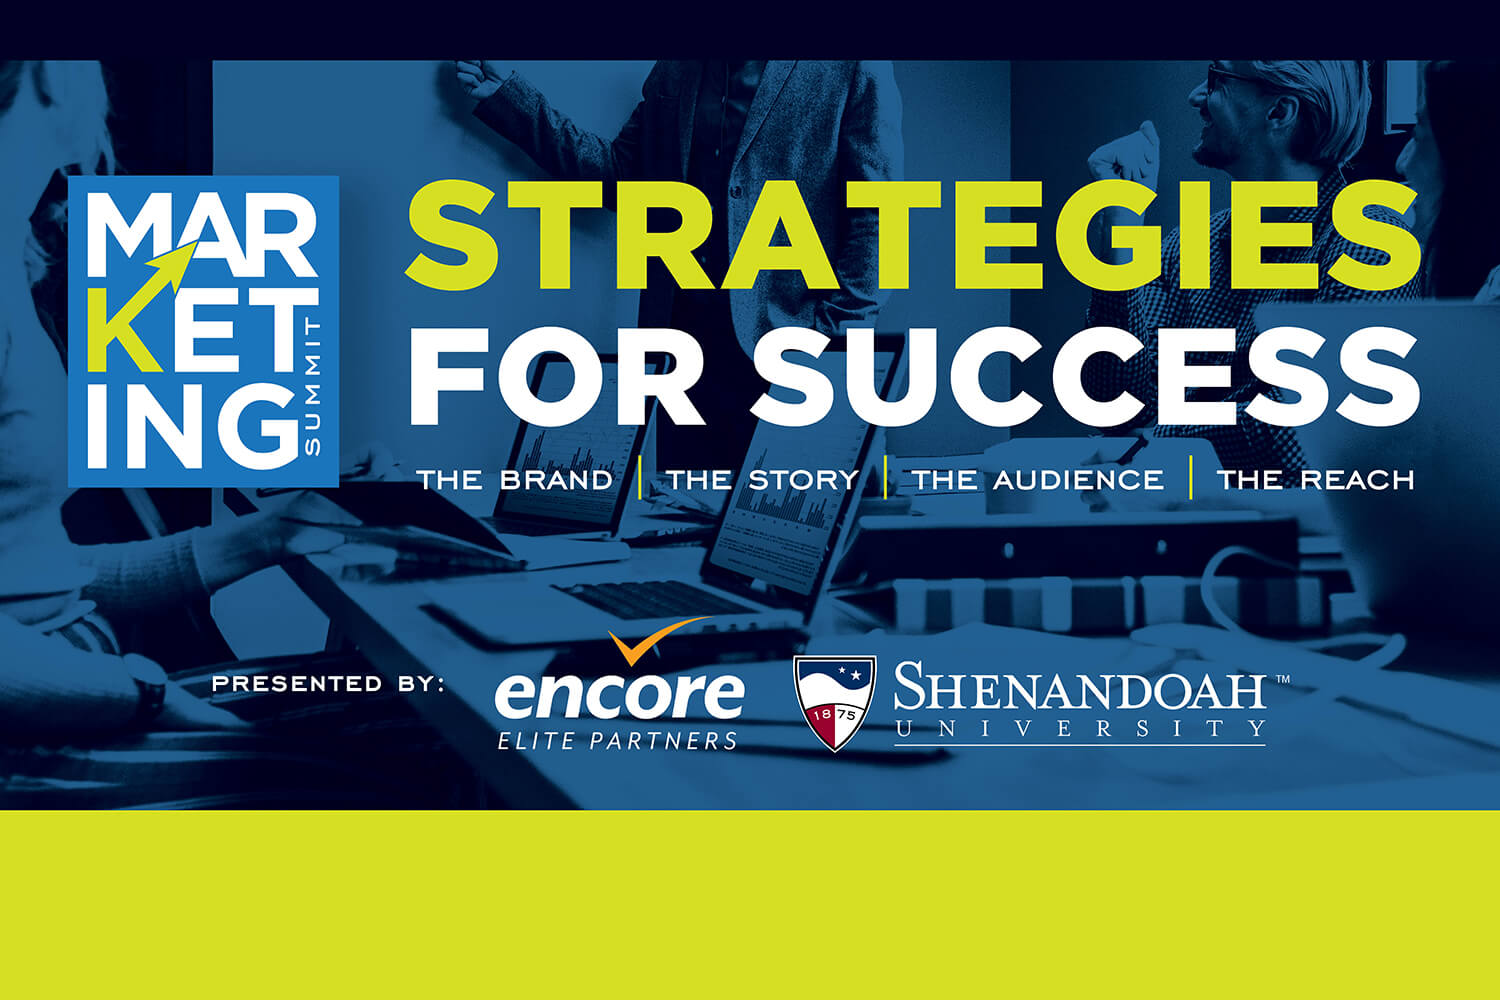 Summit Offers Strategies For Successful Marketing Event highlights trends and best marketing media